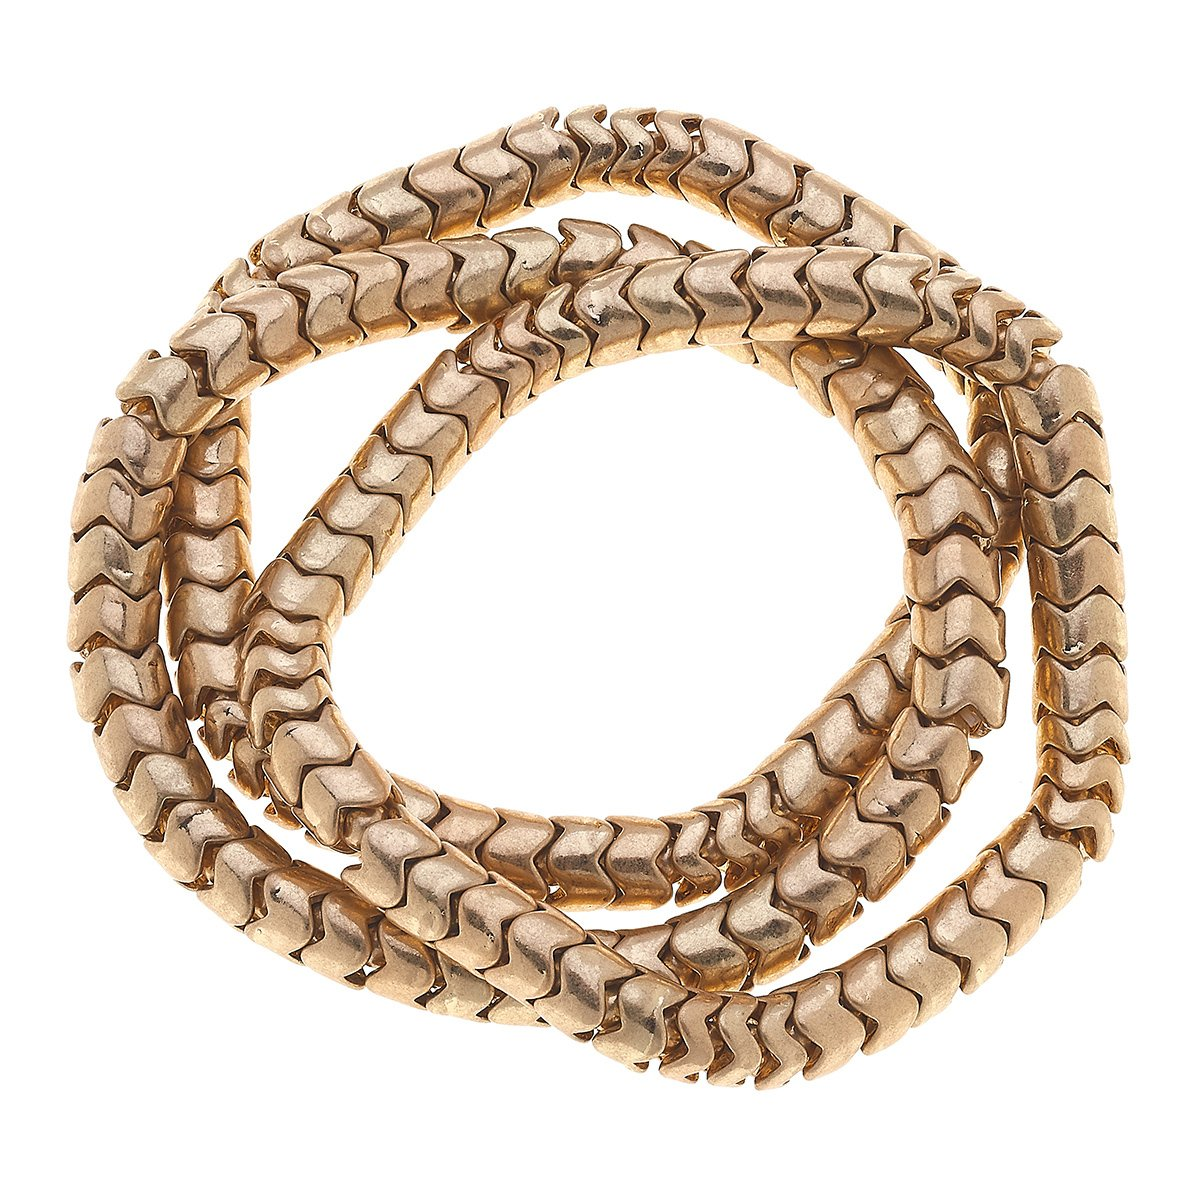 Kylie Chain Stretch Bracelets in Worn Gold (Set of 3)